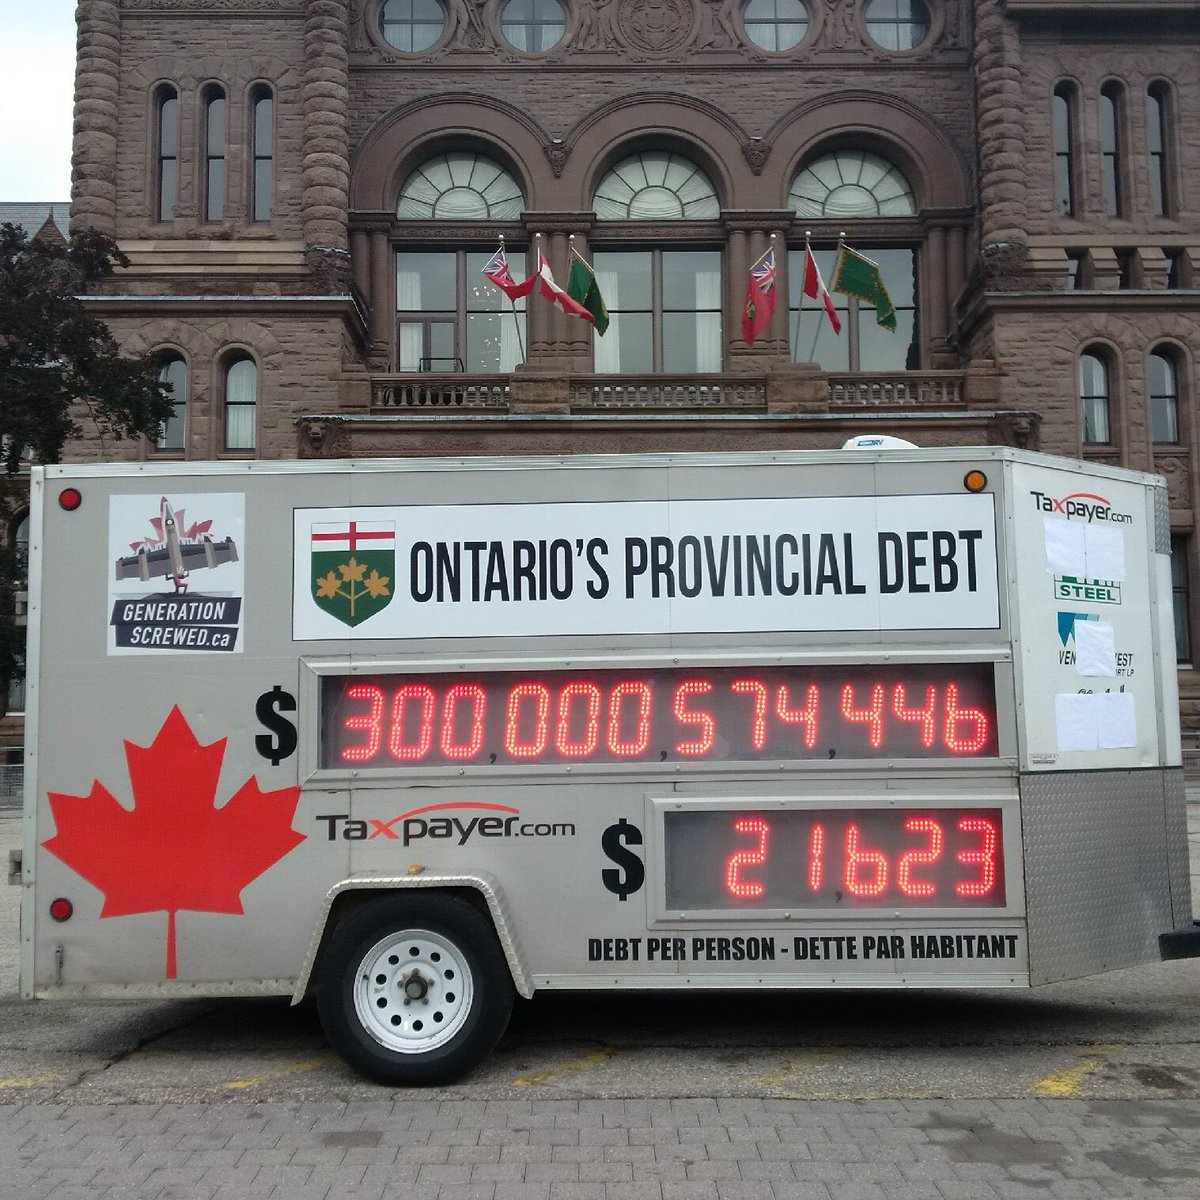 Sad day: Ontario's accumulated debt over $300 B and growing. Worst debt of any province or state in the world. https://t.co/3LhXSb7jju